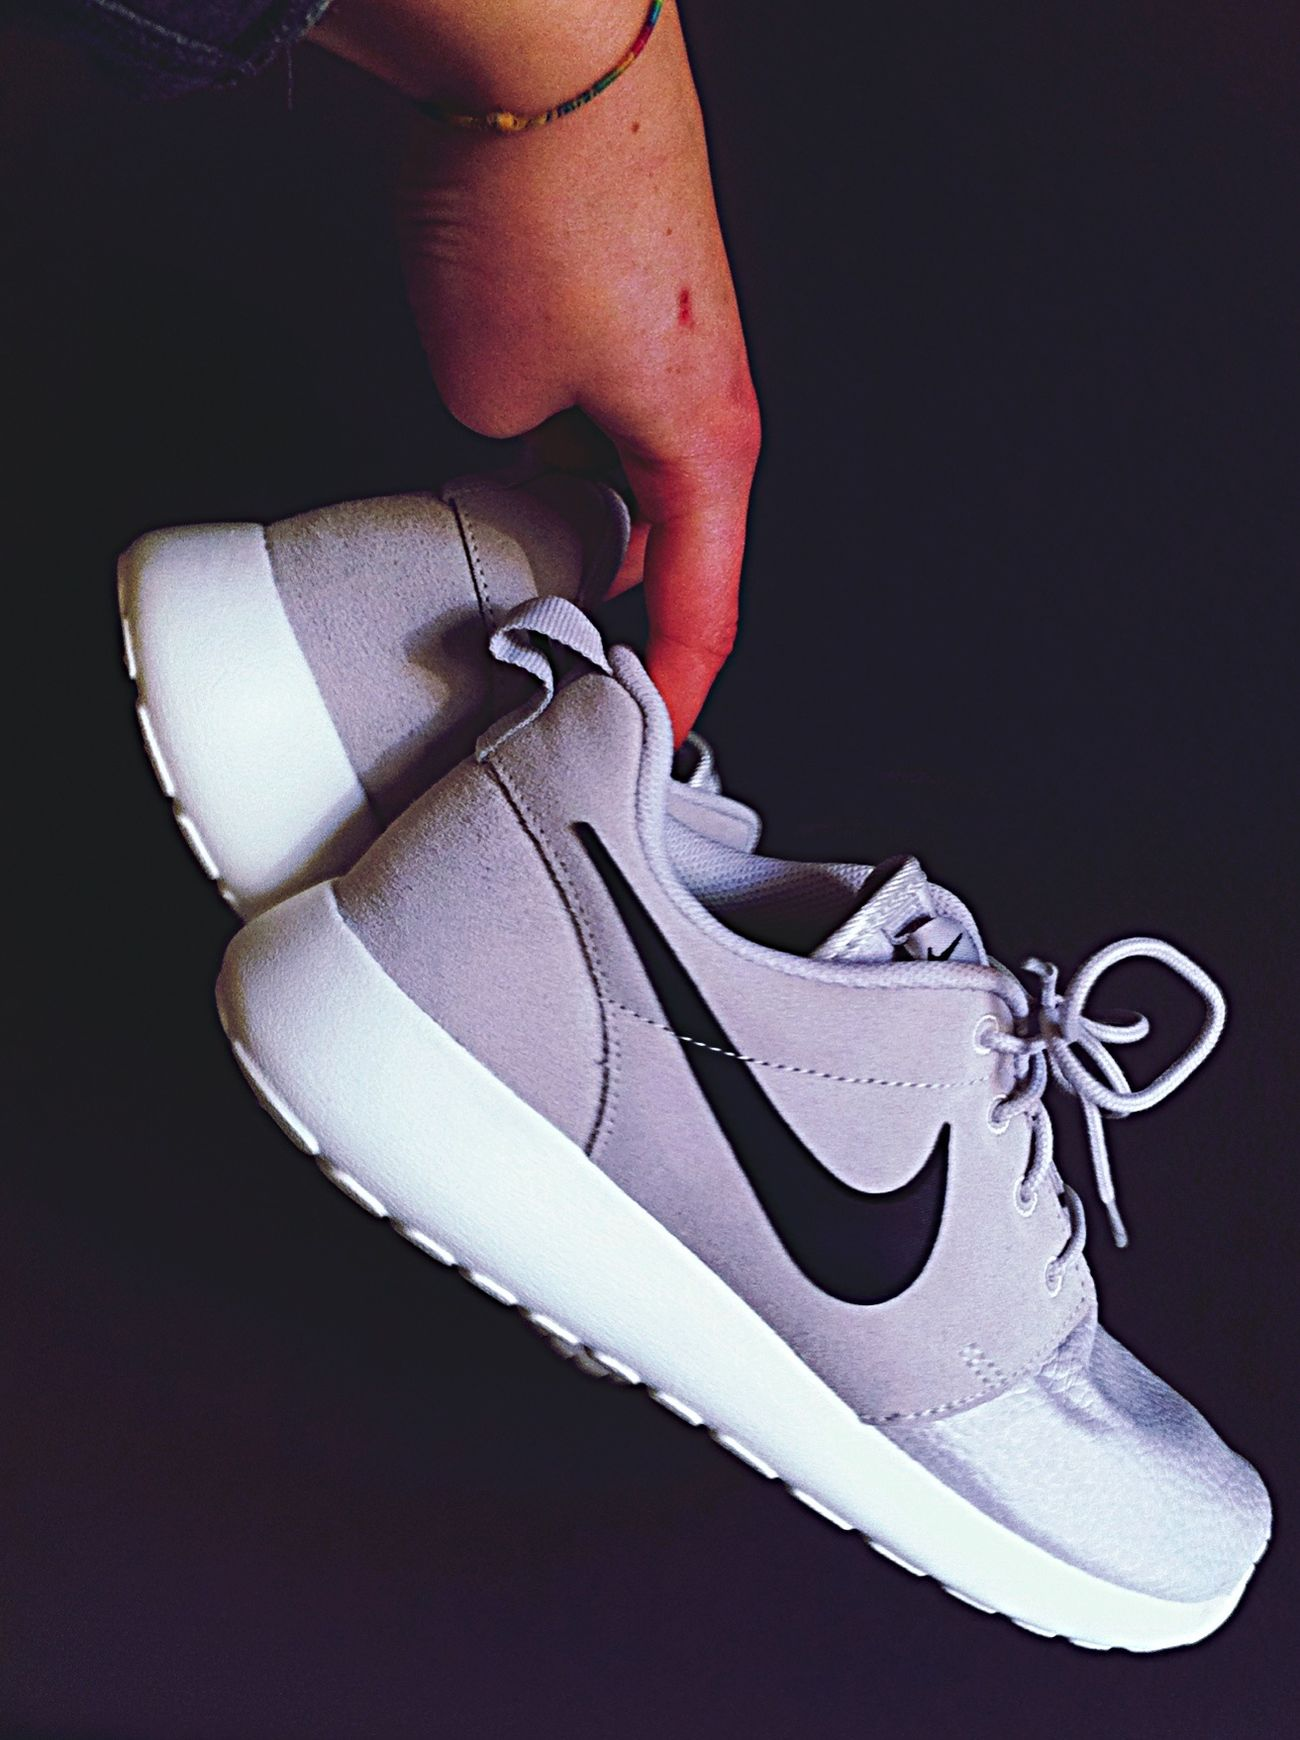 First Eyeem Photo Rosherun Amsterdam Shoes Albert Cuyp Nike